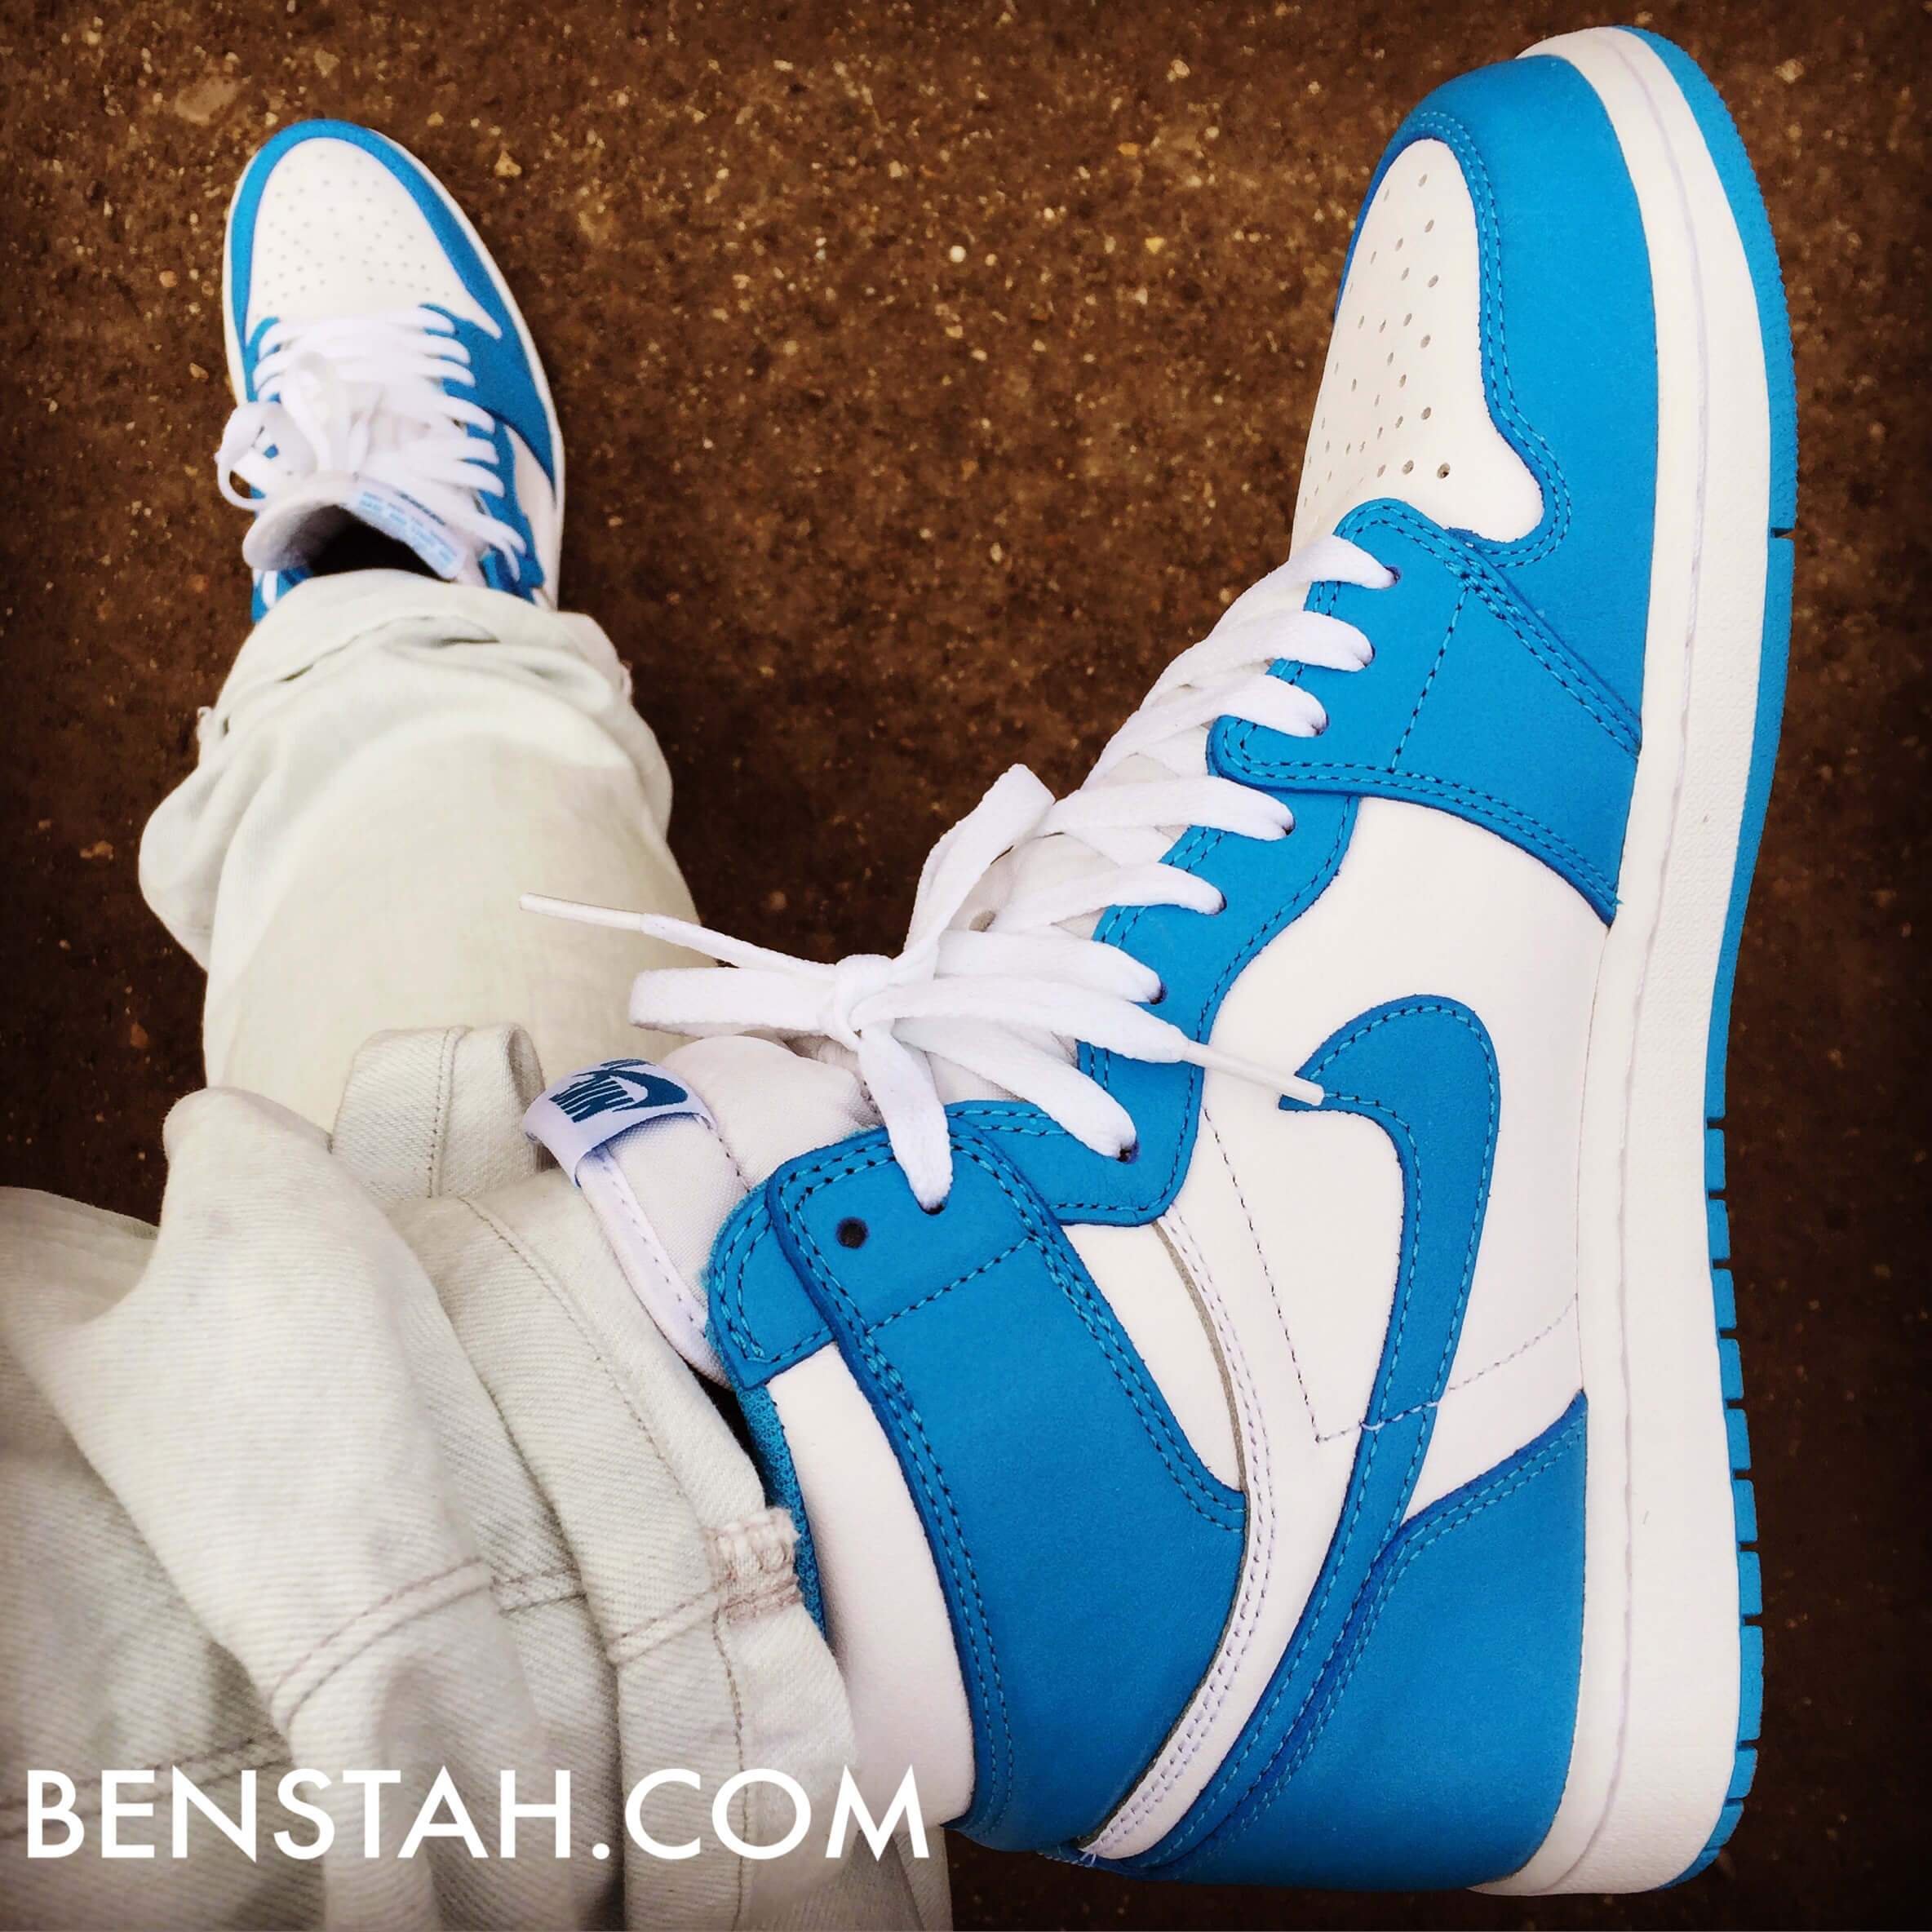 Air-Jordan-1-OG-UNC-Top-View-Benstah-Onfeet